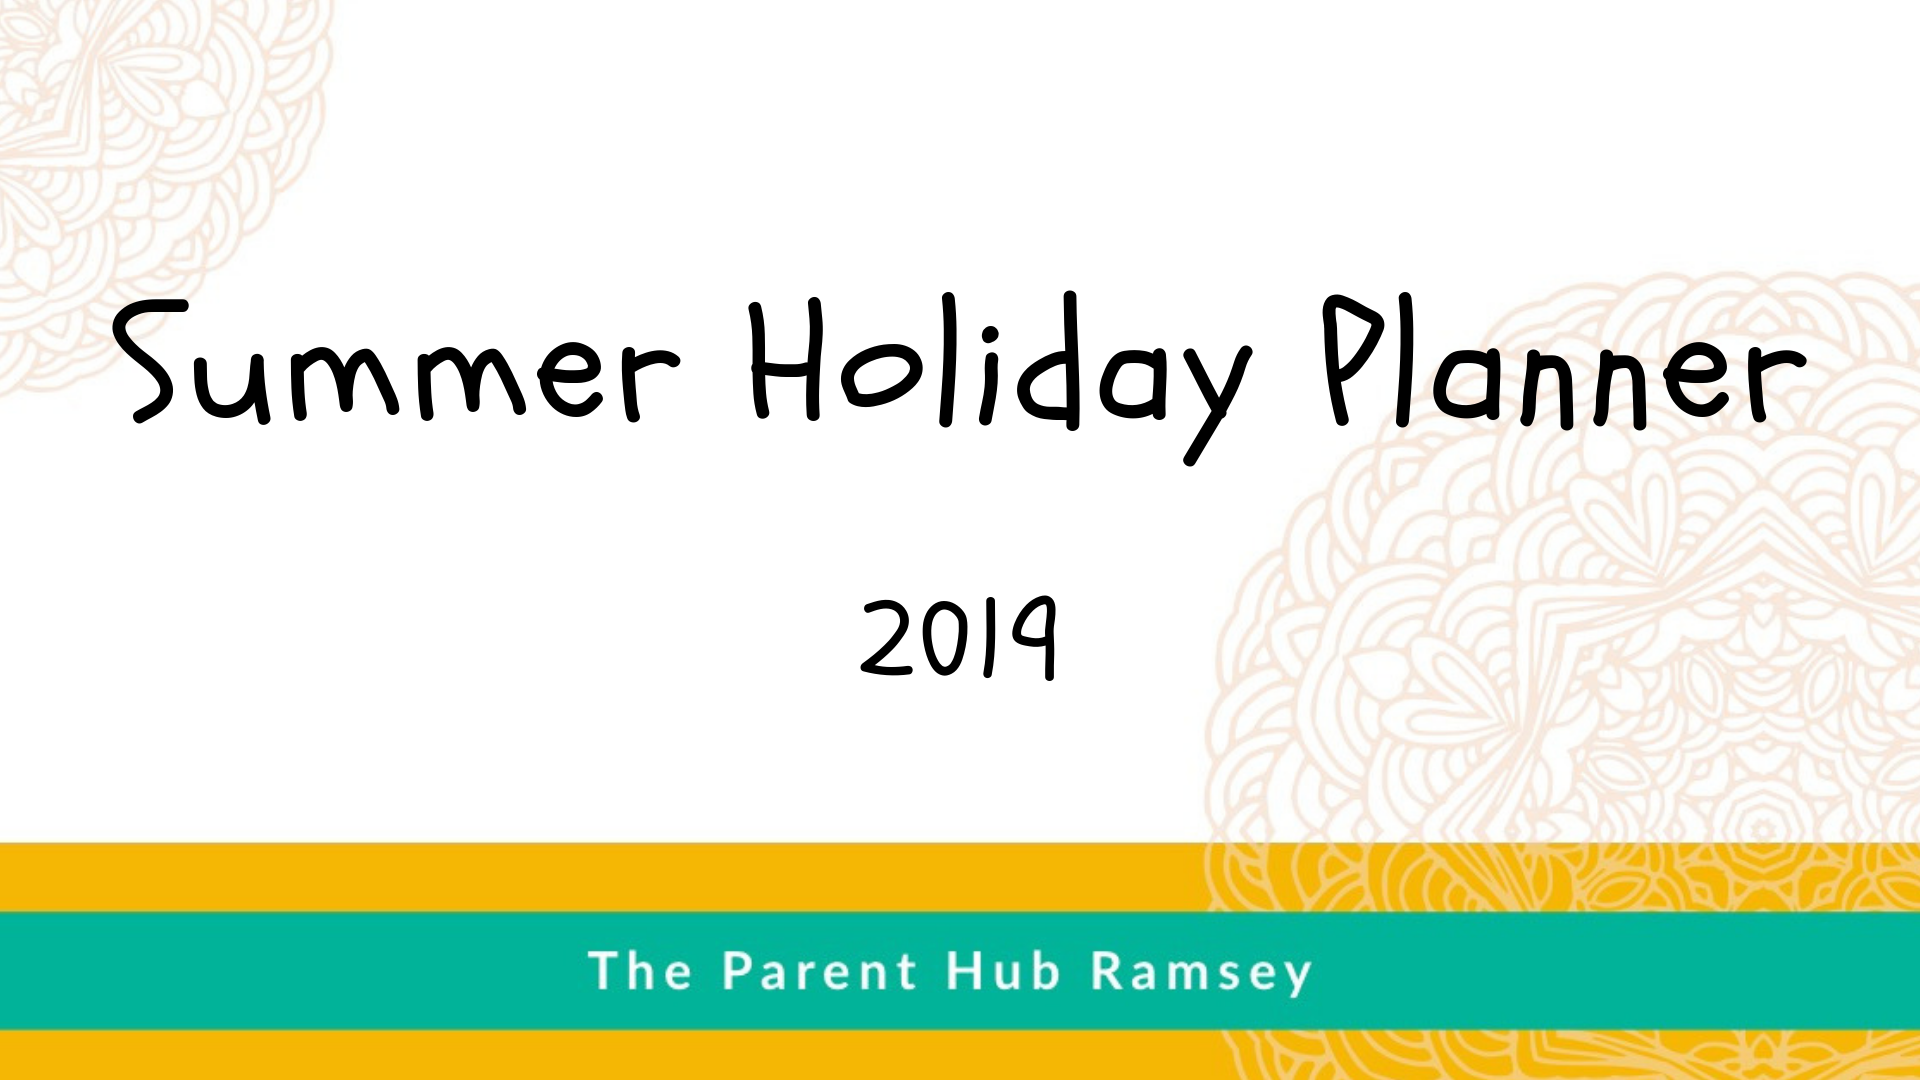 Summer Holiday Planner